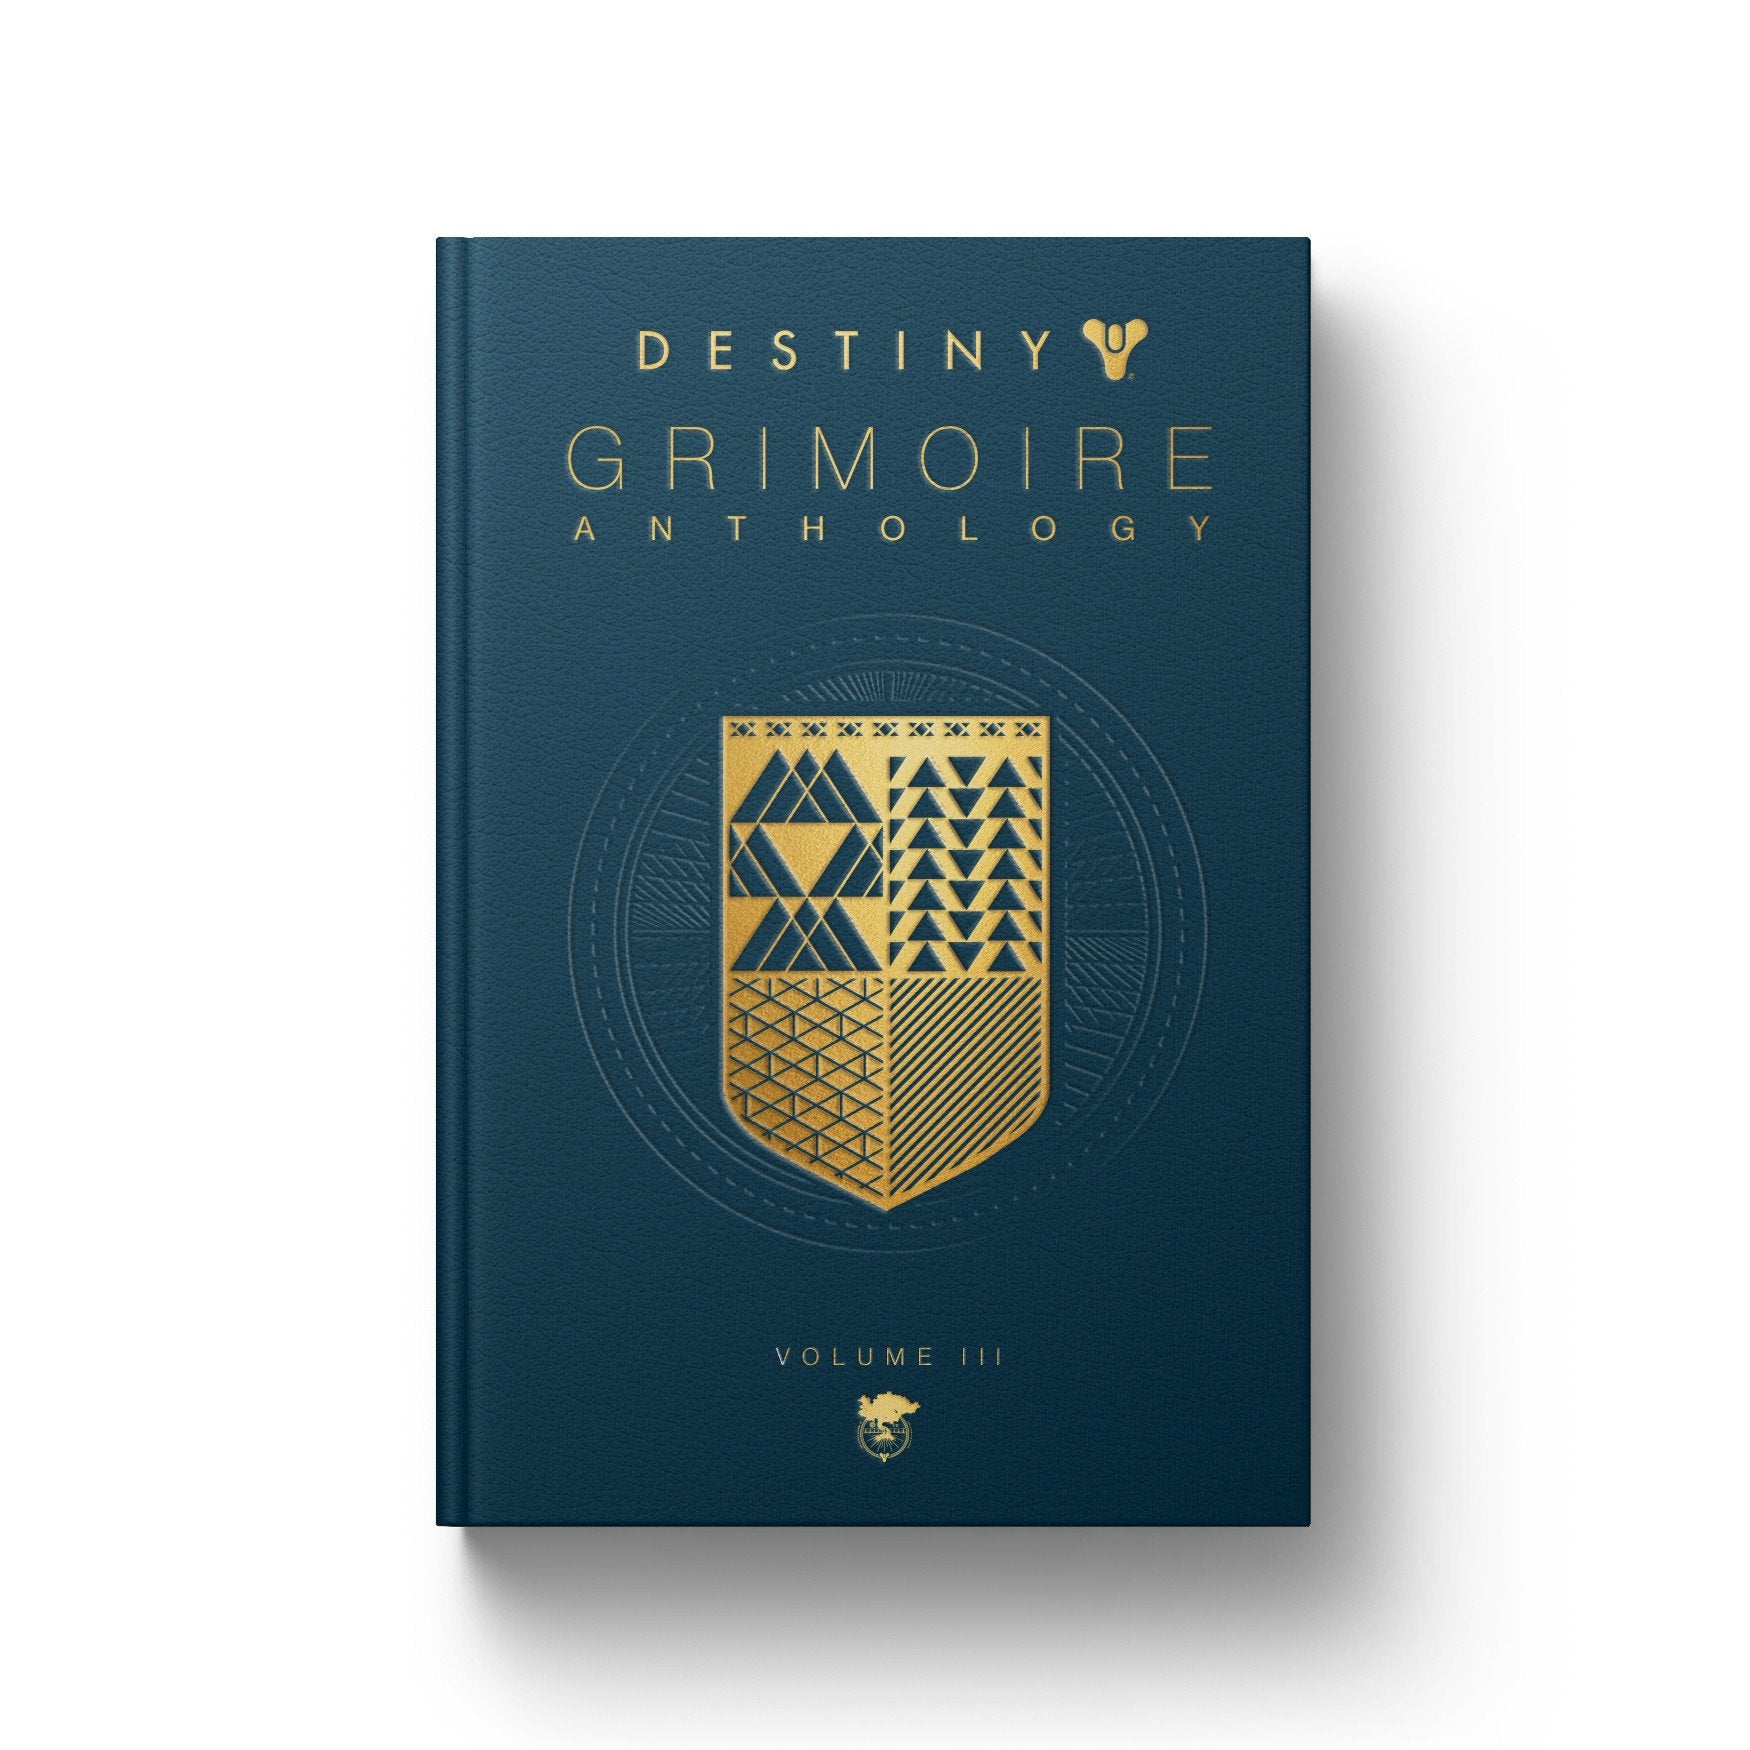 COMING SOON: DESTINY GRIMOIRE ANTHOLOGY VOLUME III